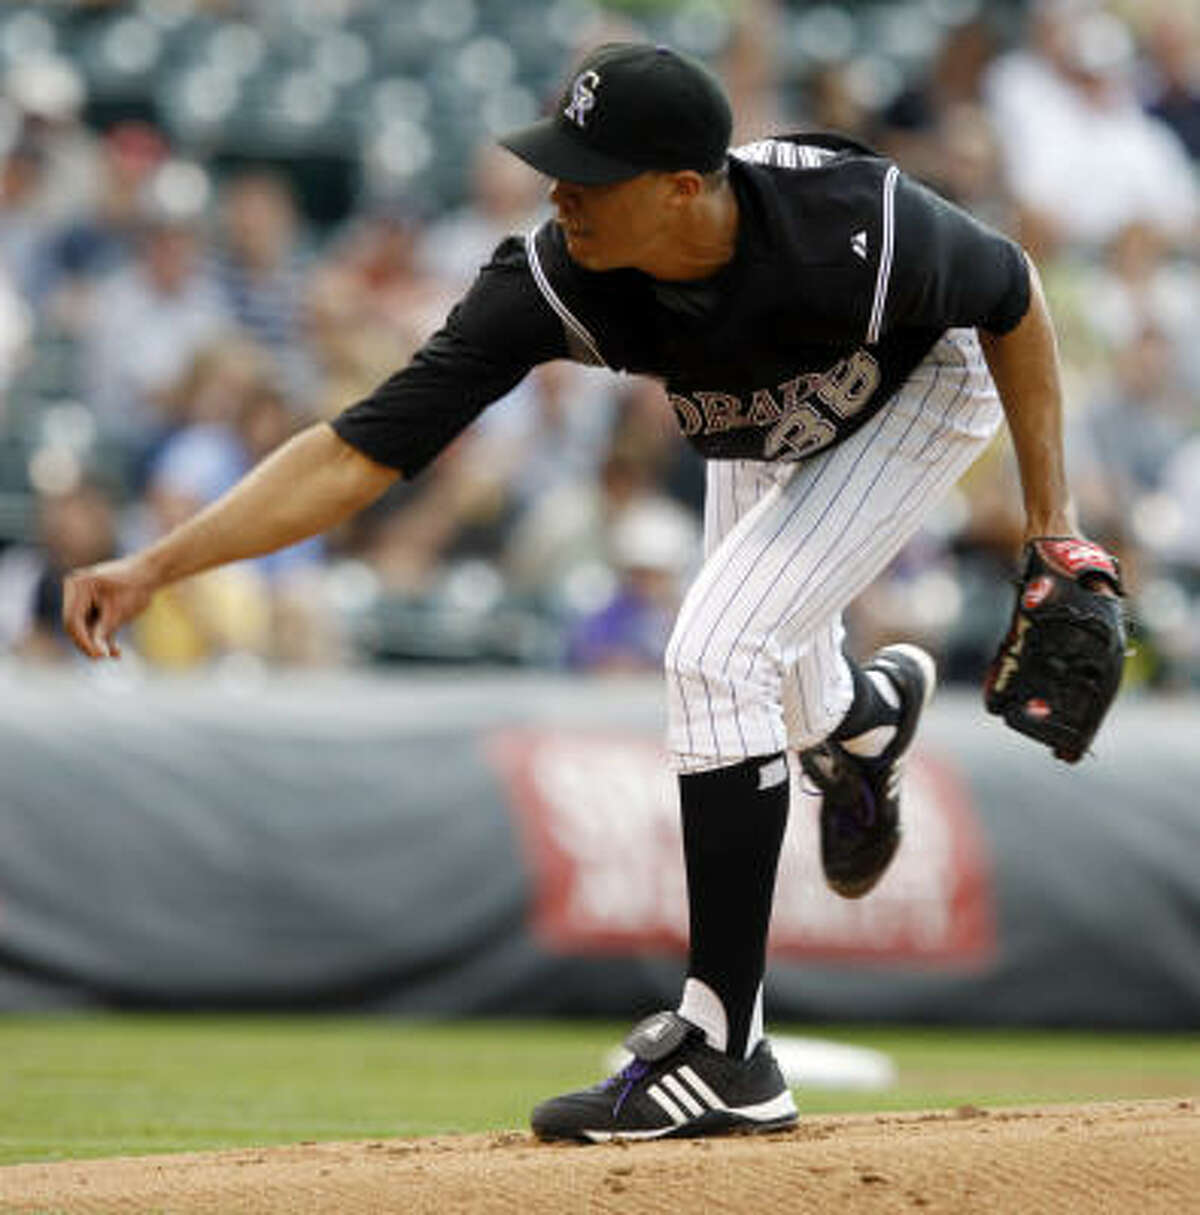 Rockies starter Ubaldo Jimenez works against the top of the Astros' lineup in the first inning.